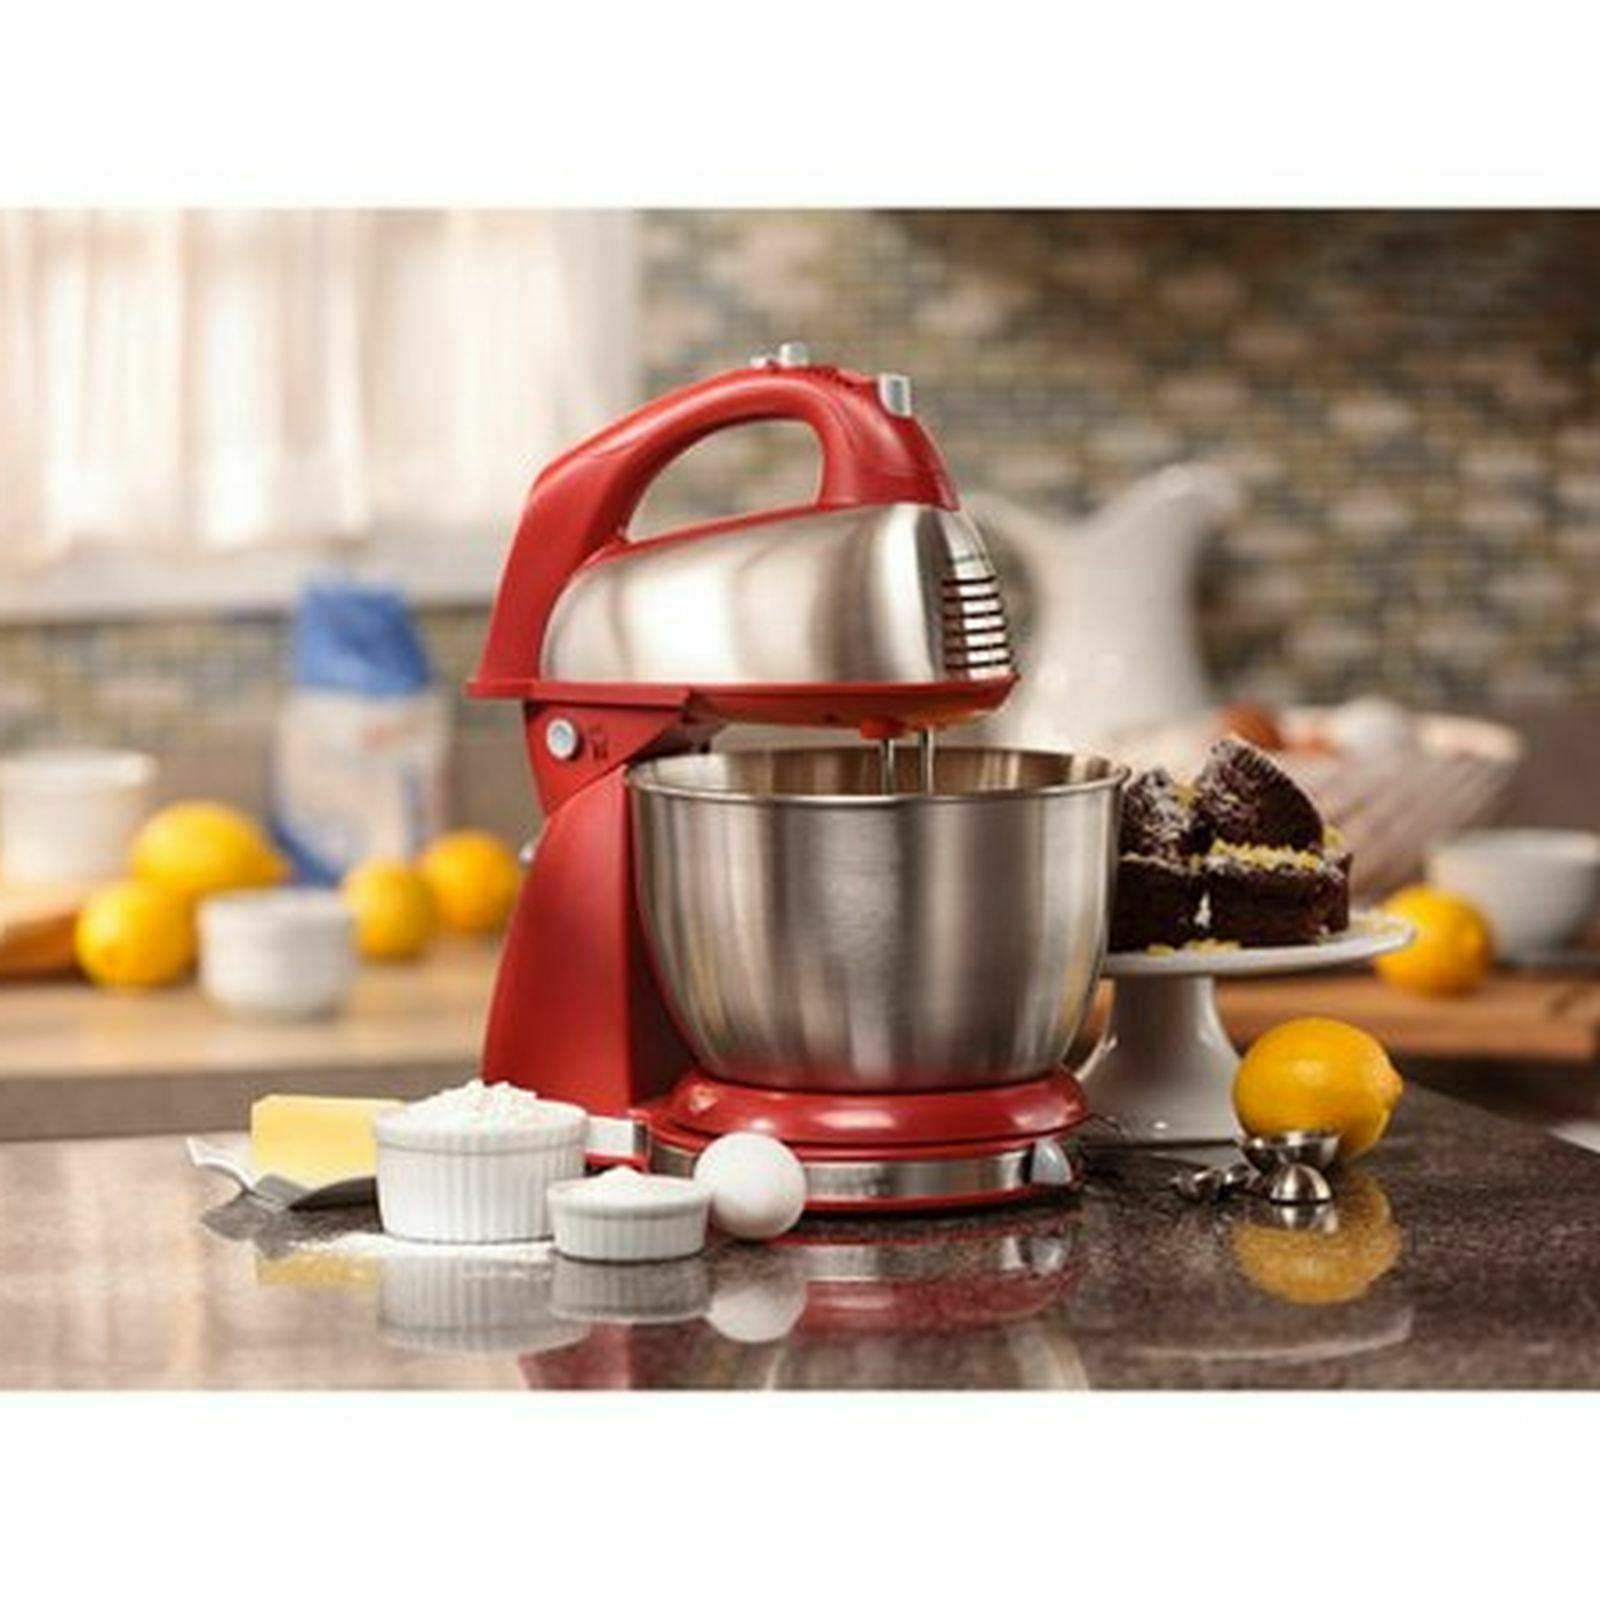 red 64654 classic hand and stand mixer